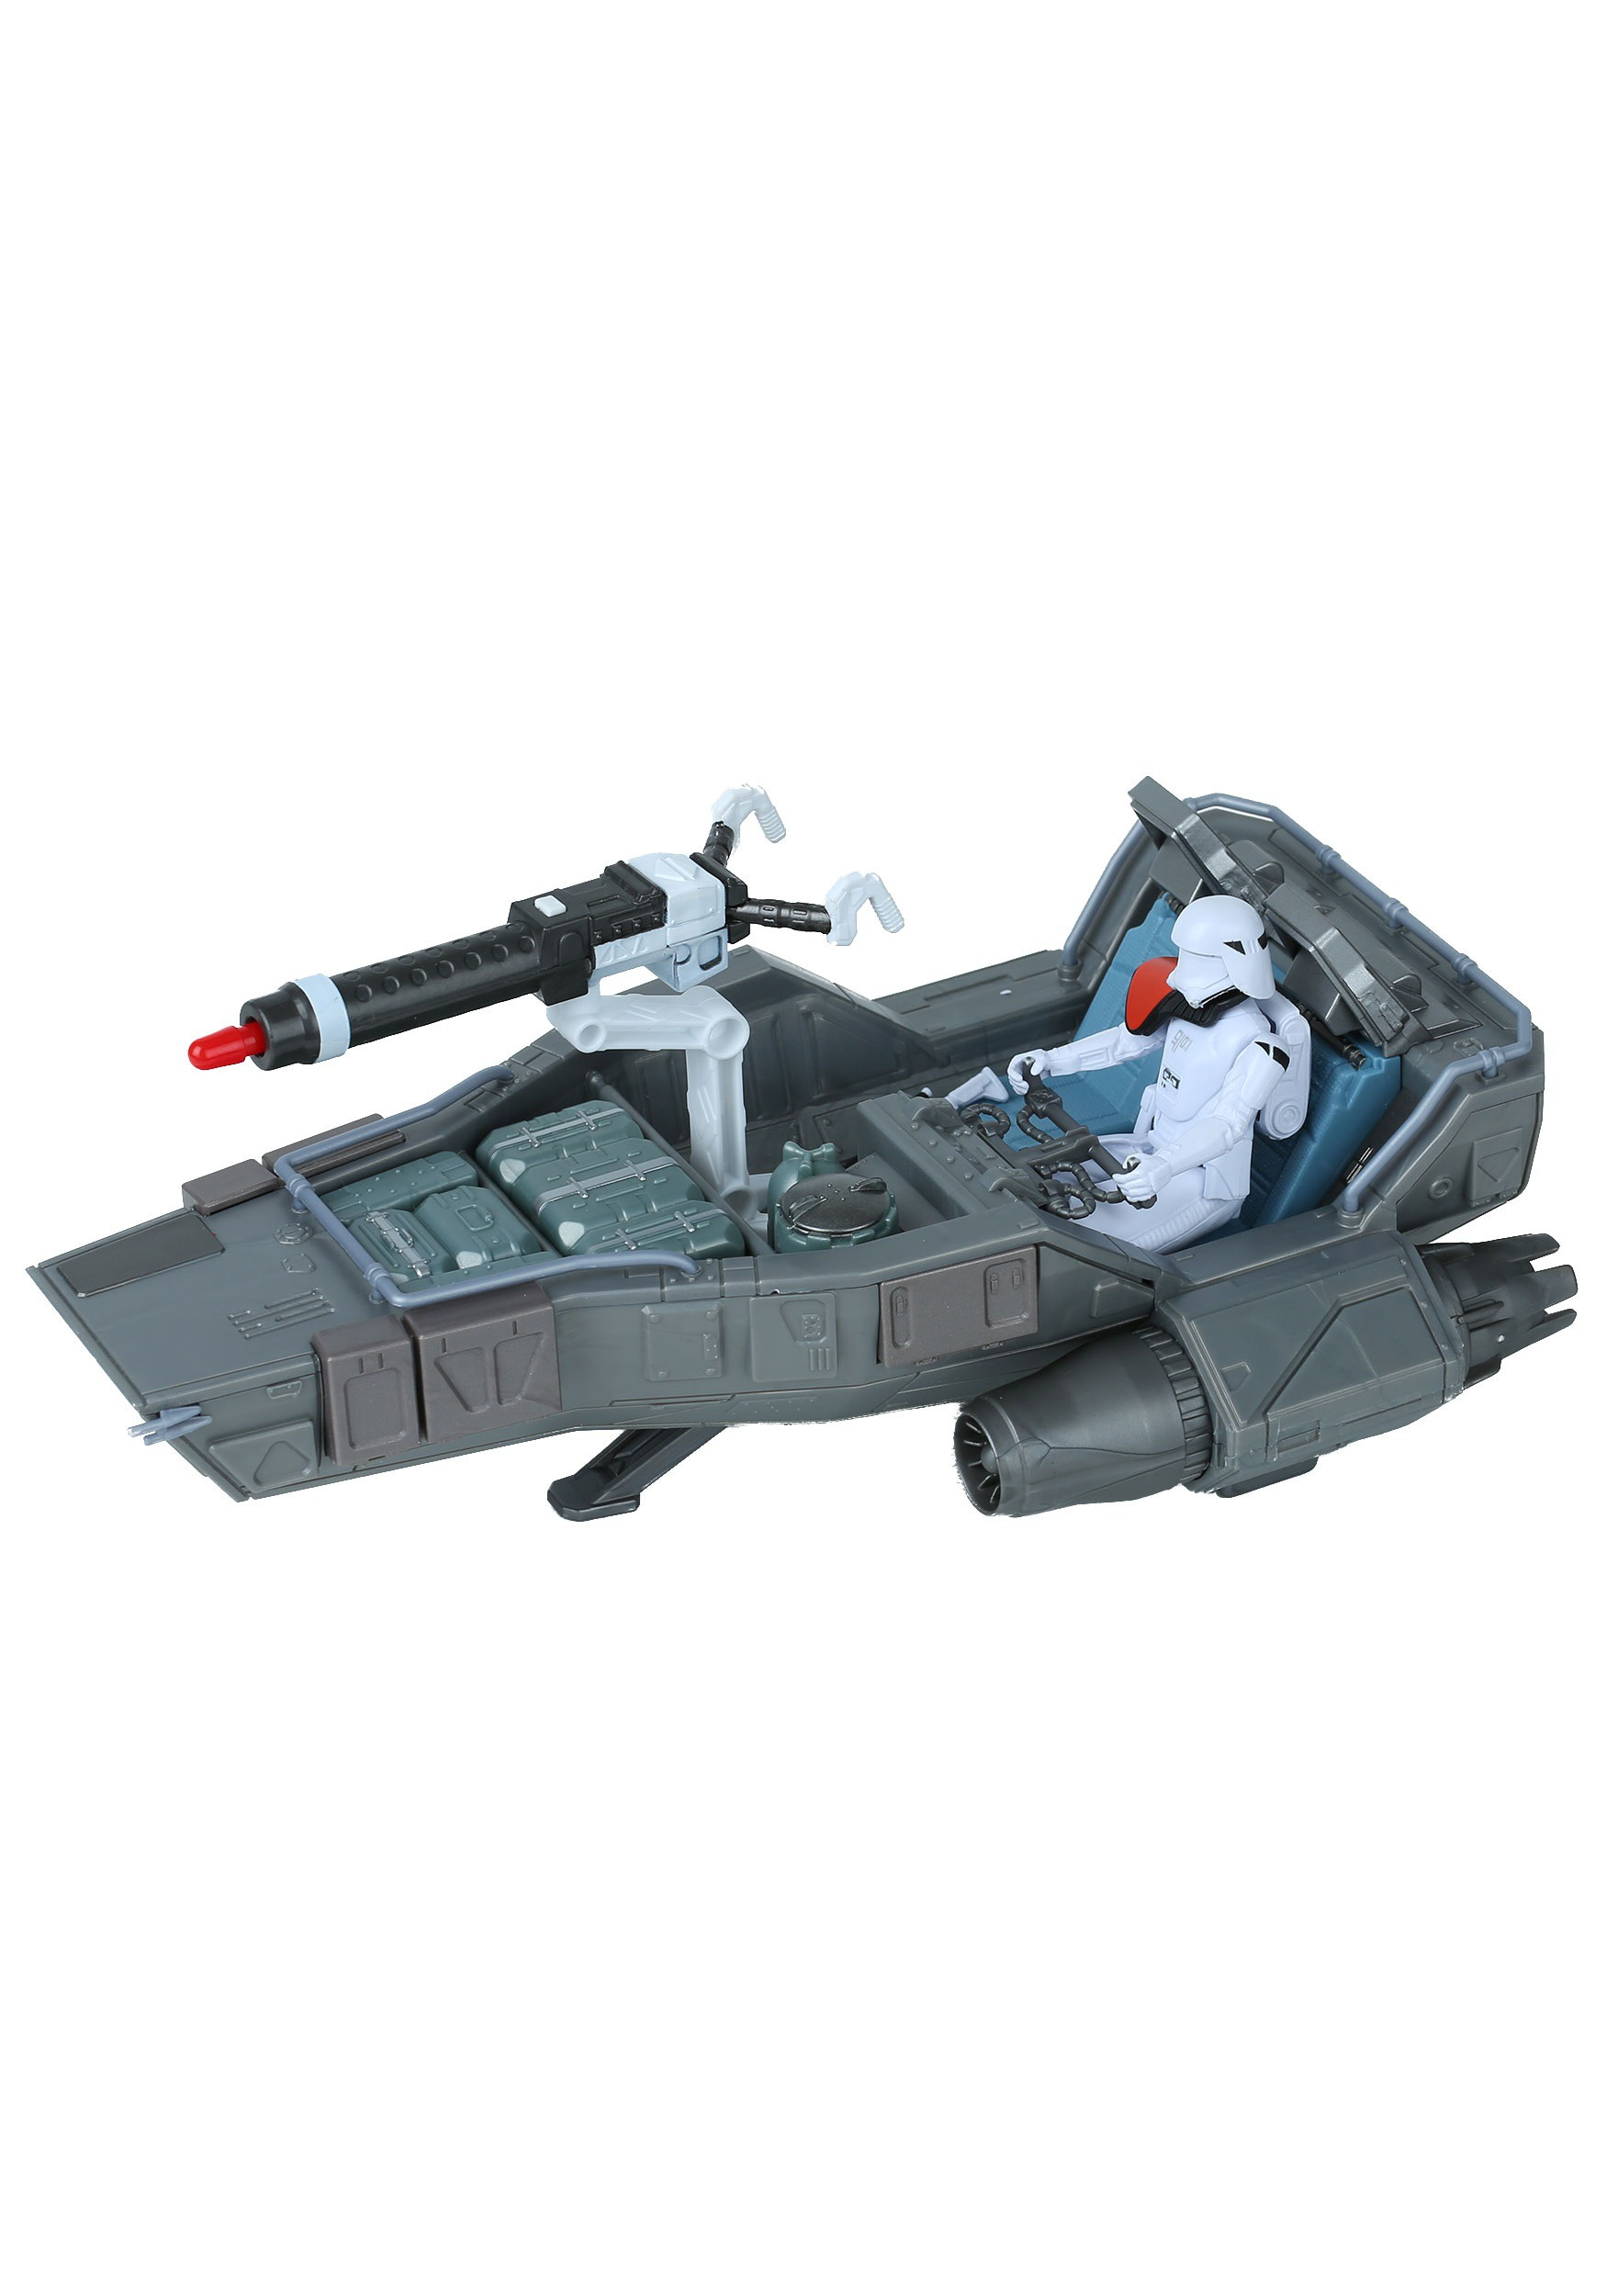 Star Wars Episode 7 First Order Snowspeeder EEDB3673